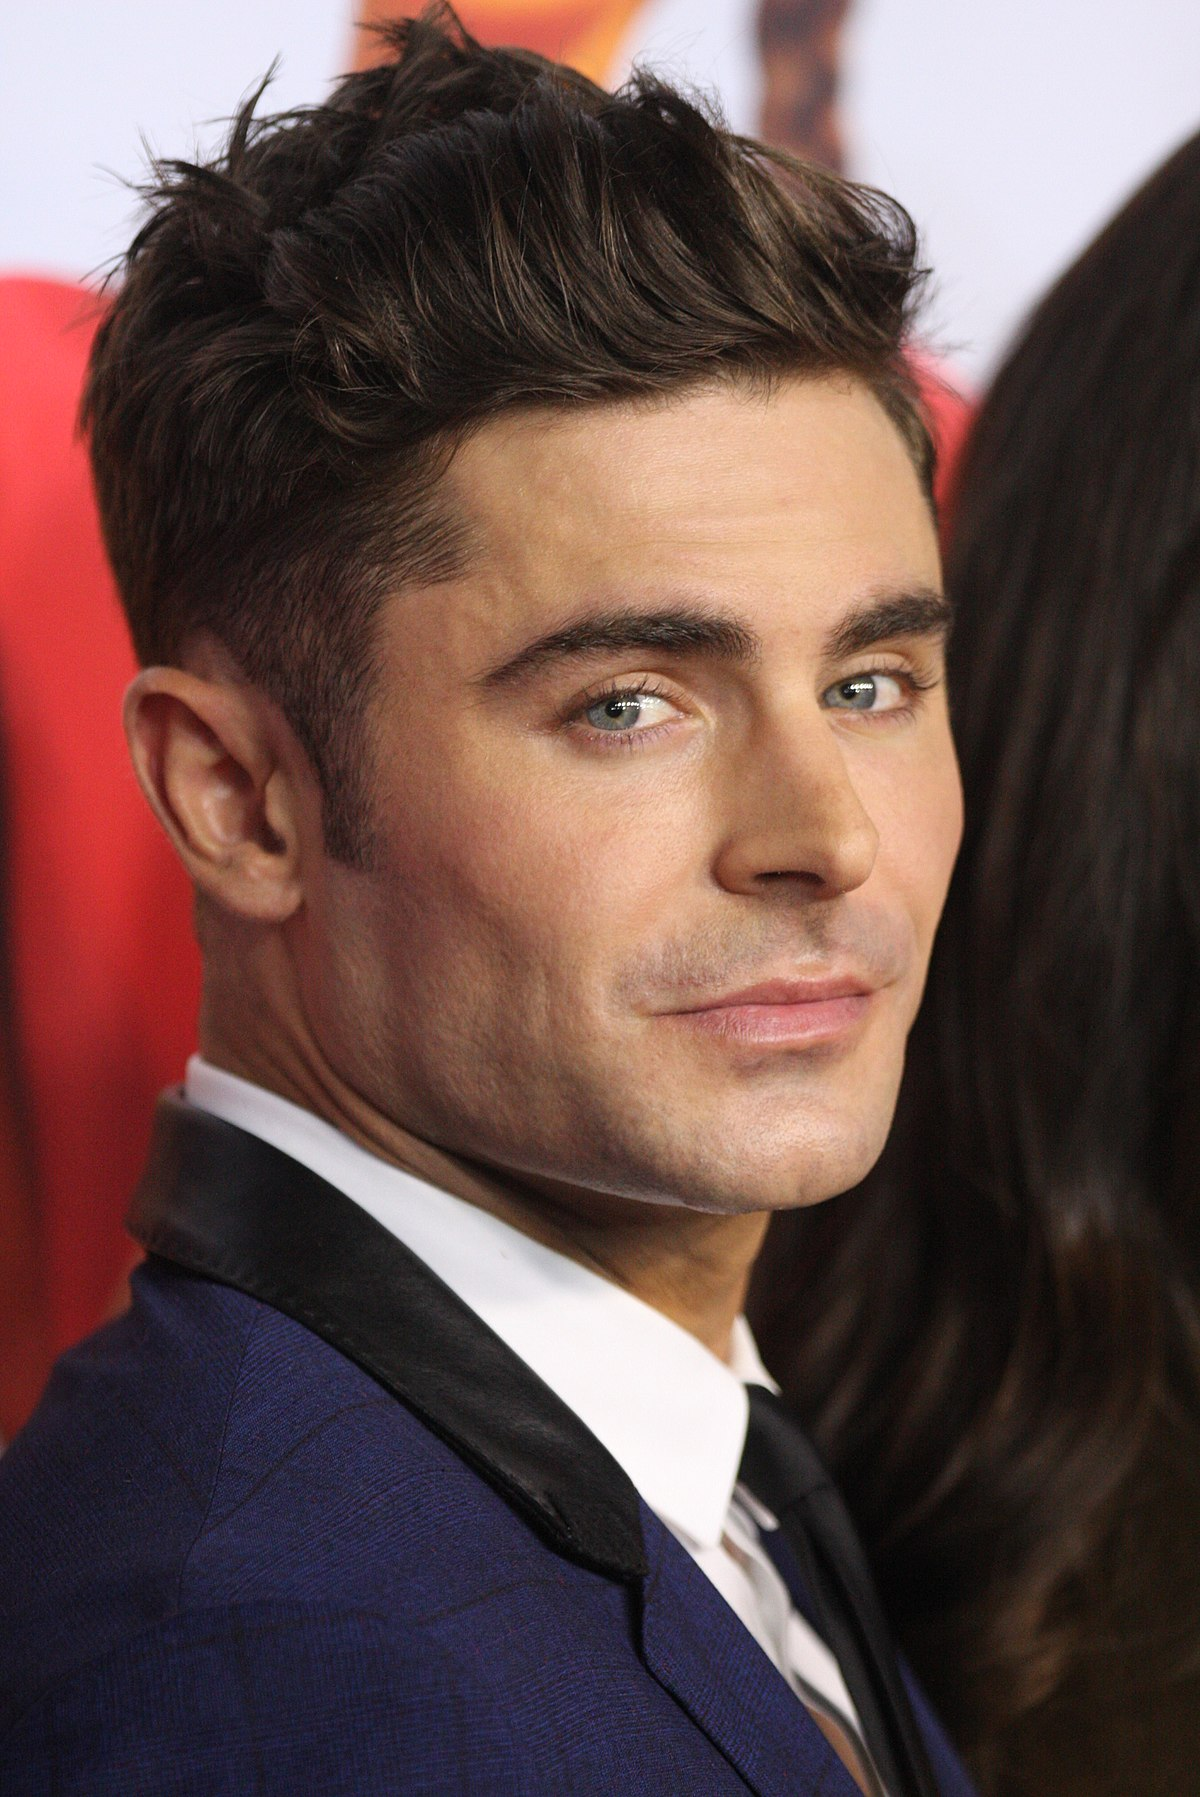 Zac Efron - Wikipedia,...